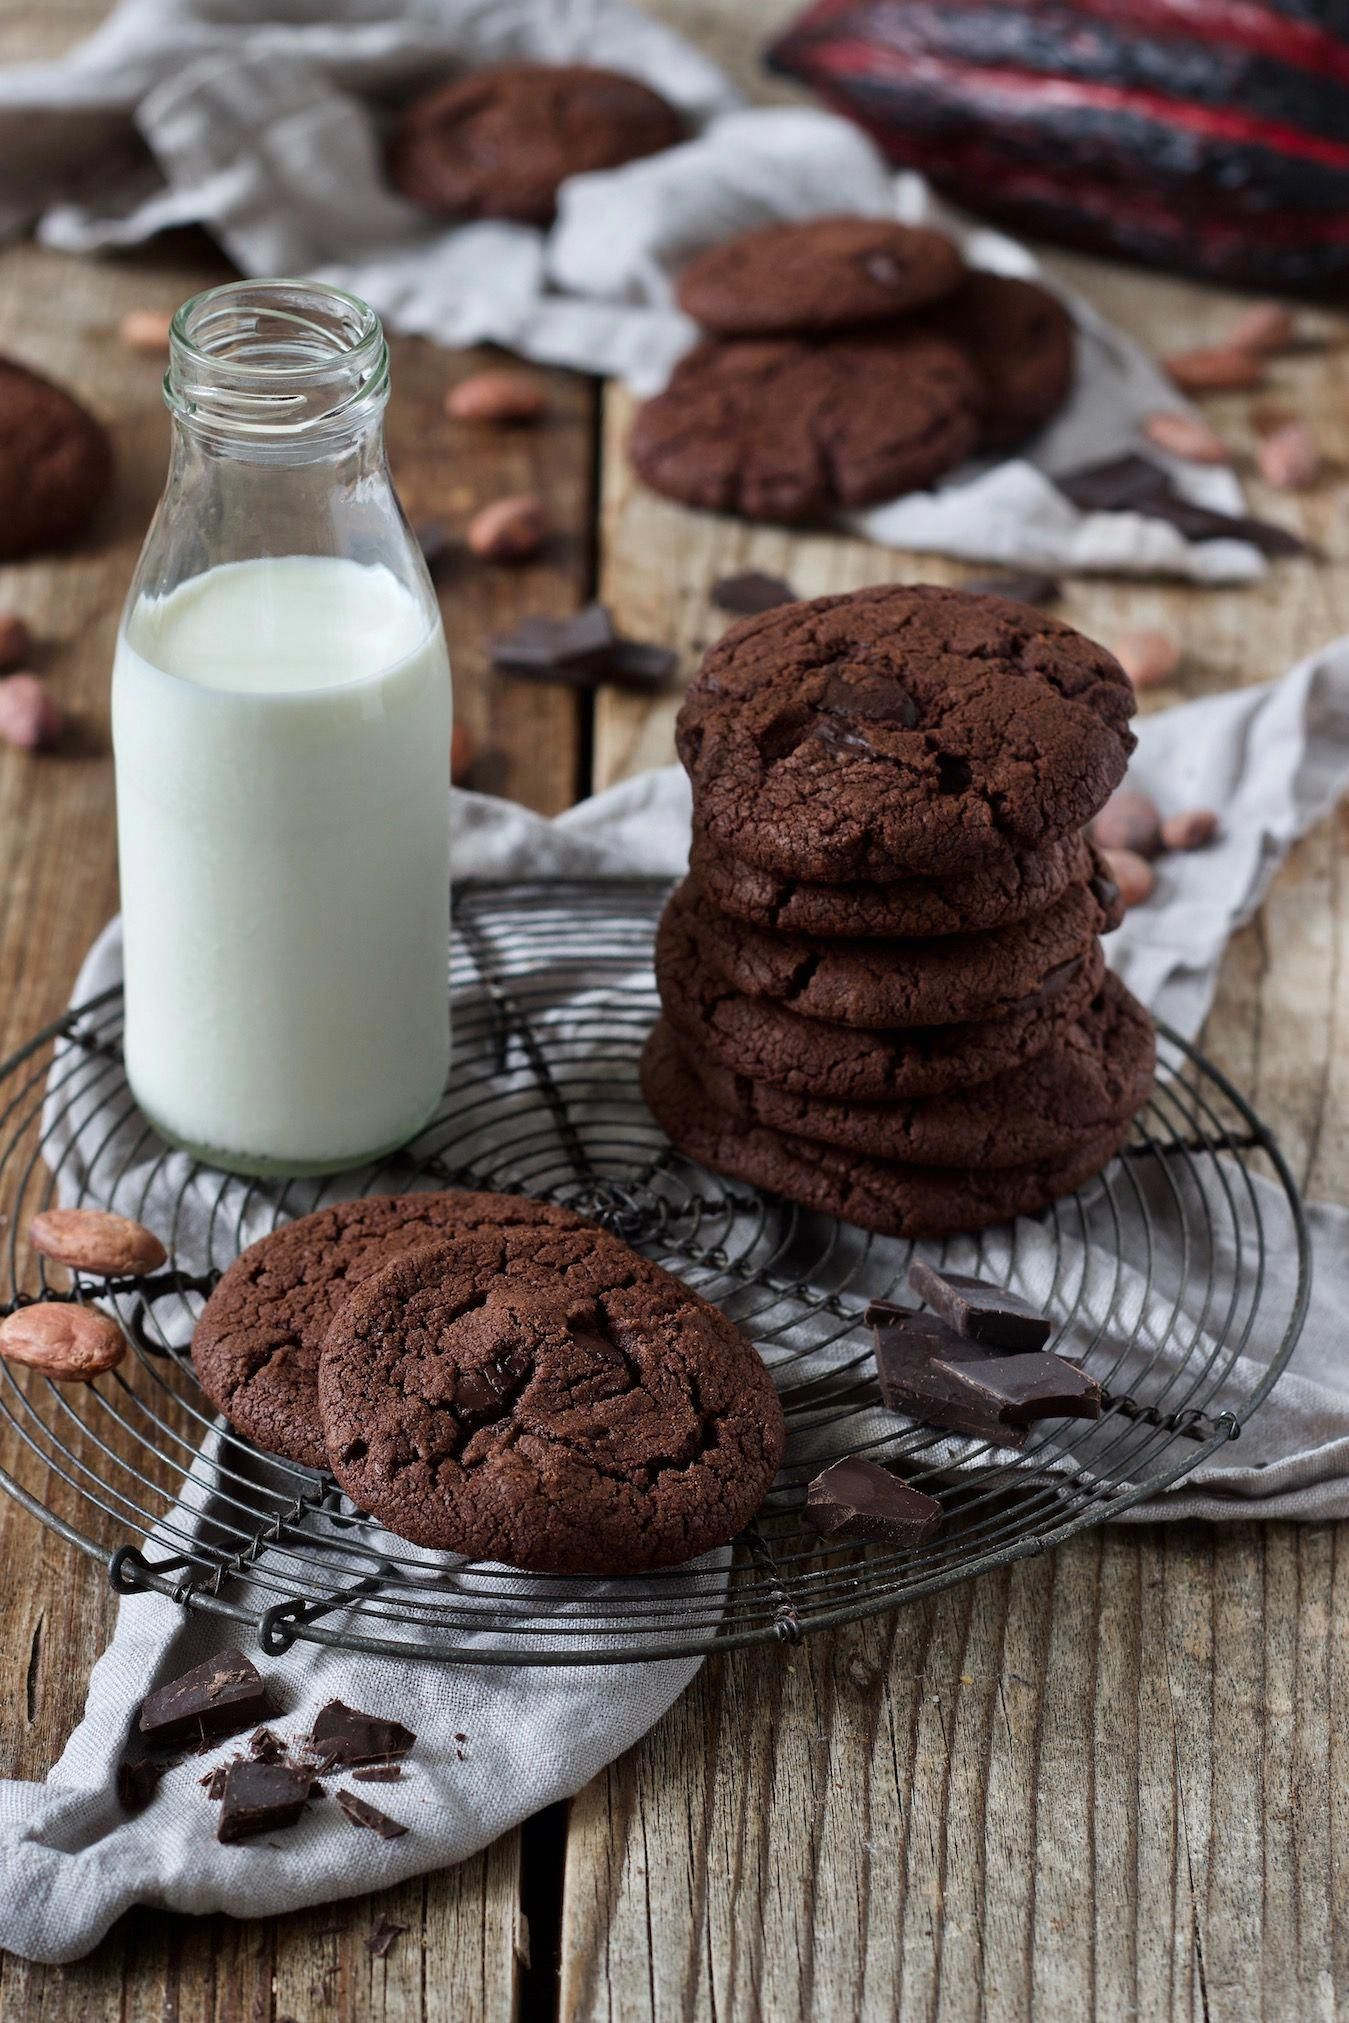 Schoko Cookies Rezept - Diese leckeren Schoko Cookies einfach und schnell gemacht. // Chocolate Cookies Recipe - This easy recipe makes chewy and delicious chocolate cookies that taste like brownies. // Sweets & Lifestyle®️